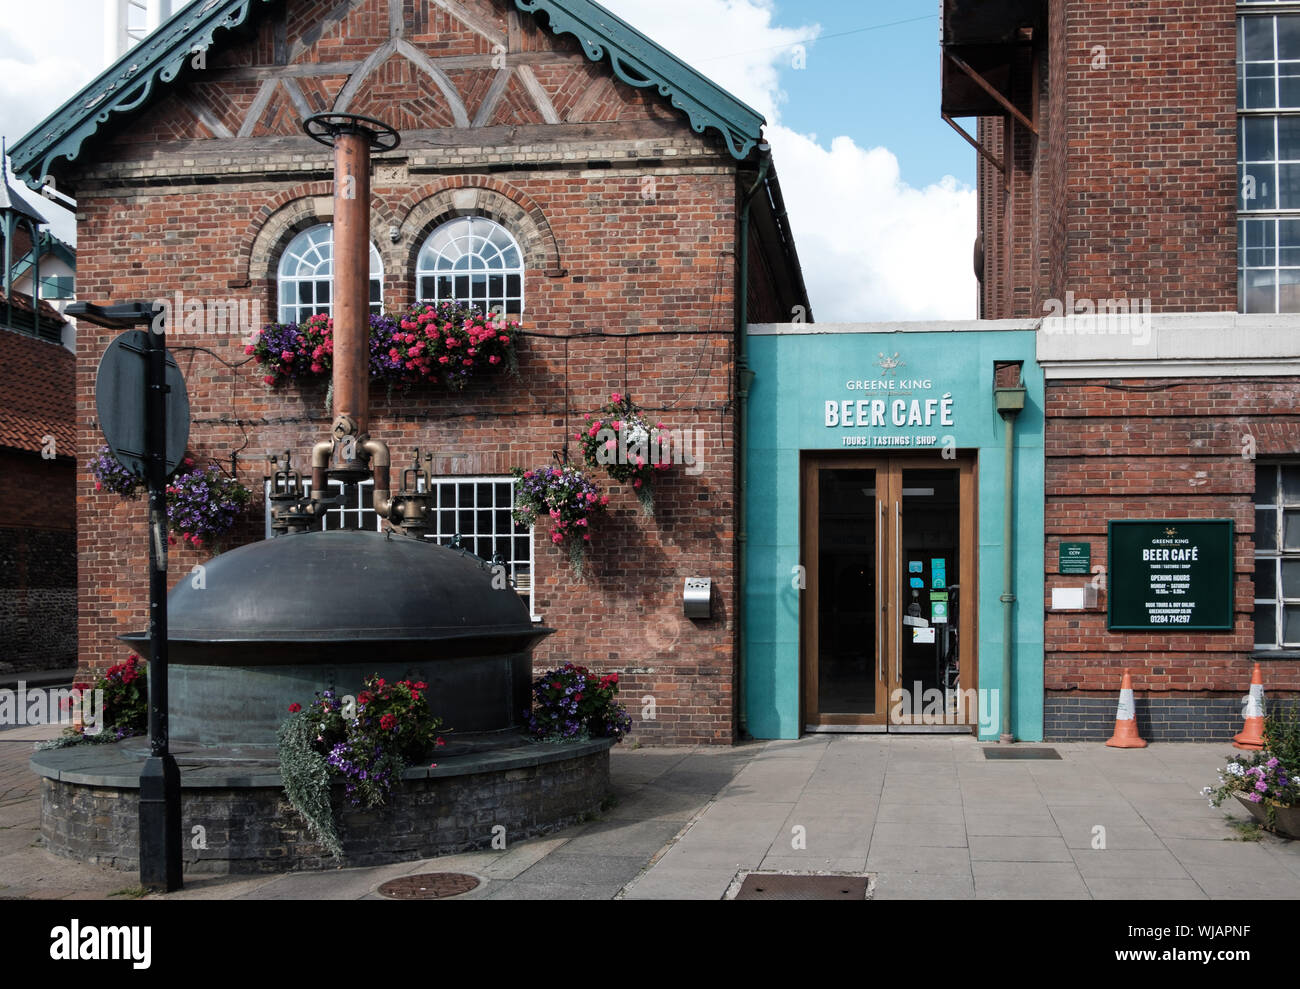 External view of the Beer Cafe and visitor centre with beer copper at the Greene King Westgate Brewery, Bury St Edmunds, Suffolk Stock Photo